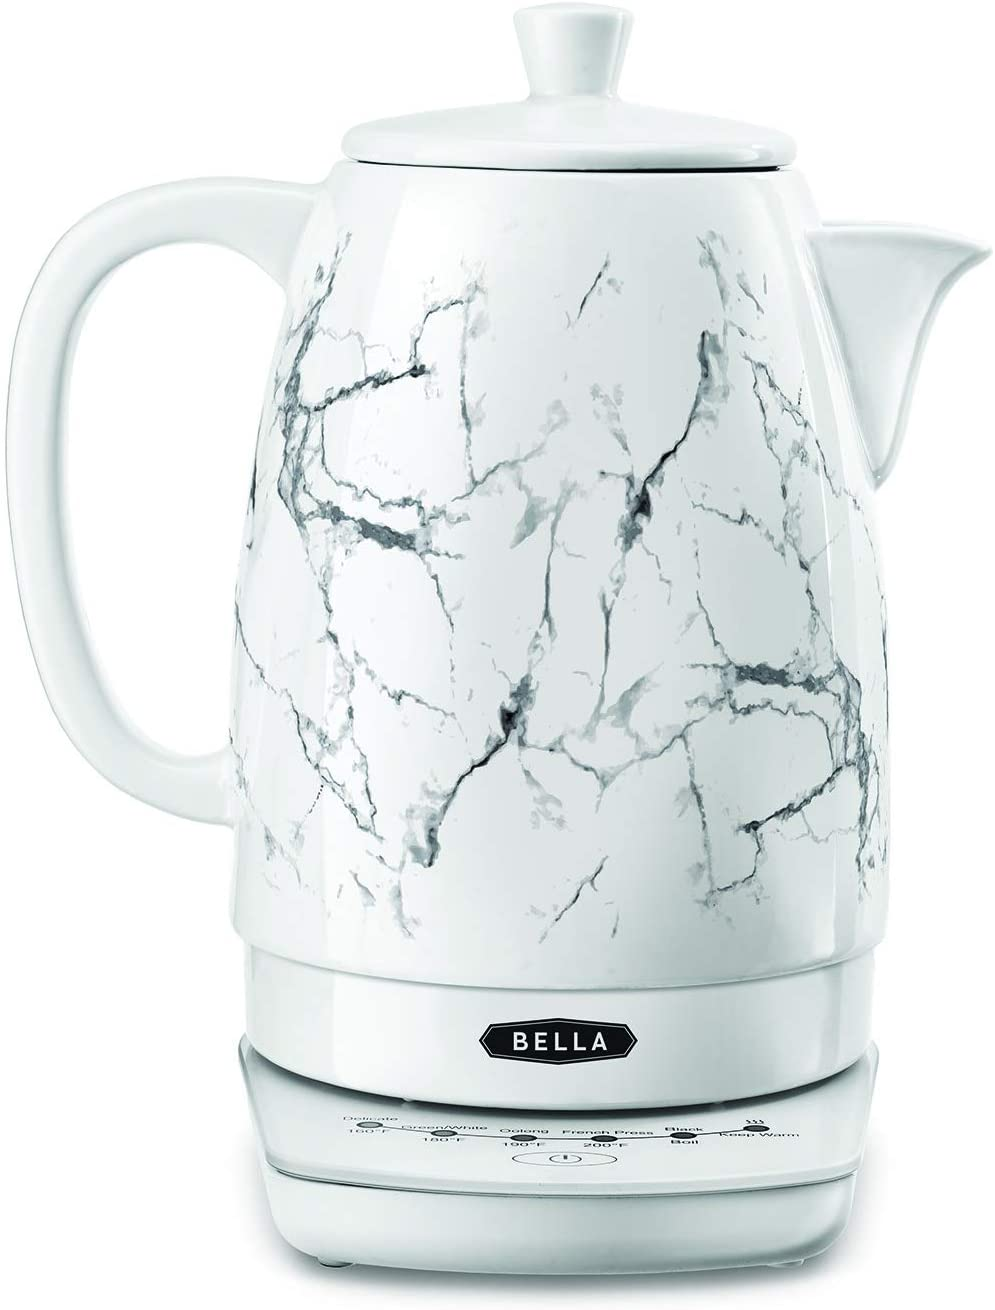 Bella 1. 8l Touch Programmable Ceramic Electric Kettle